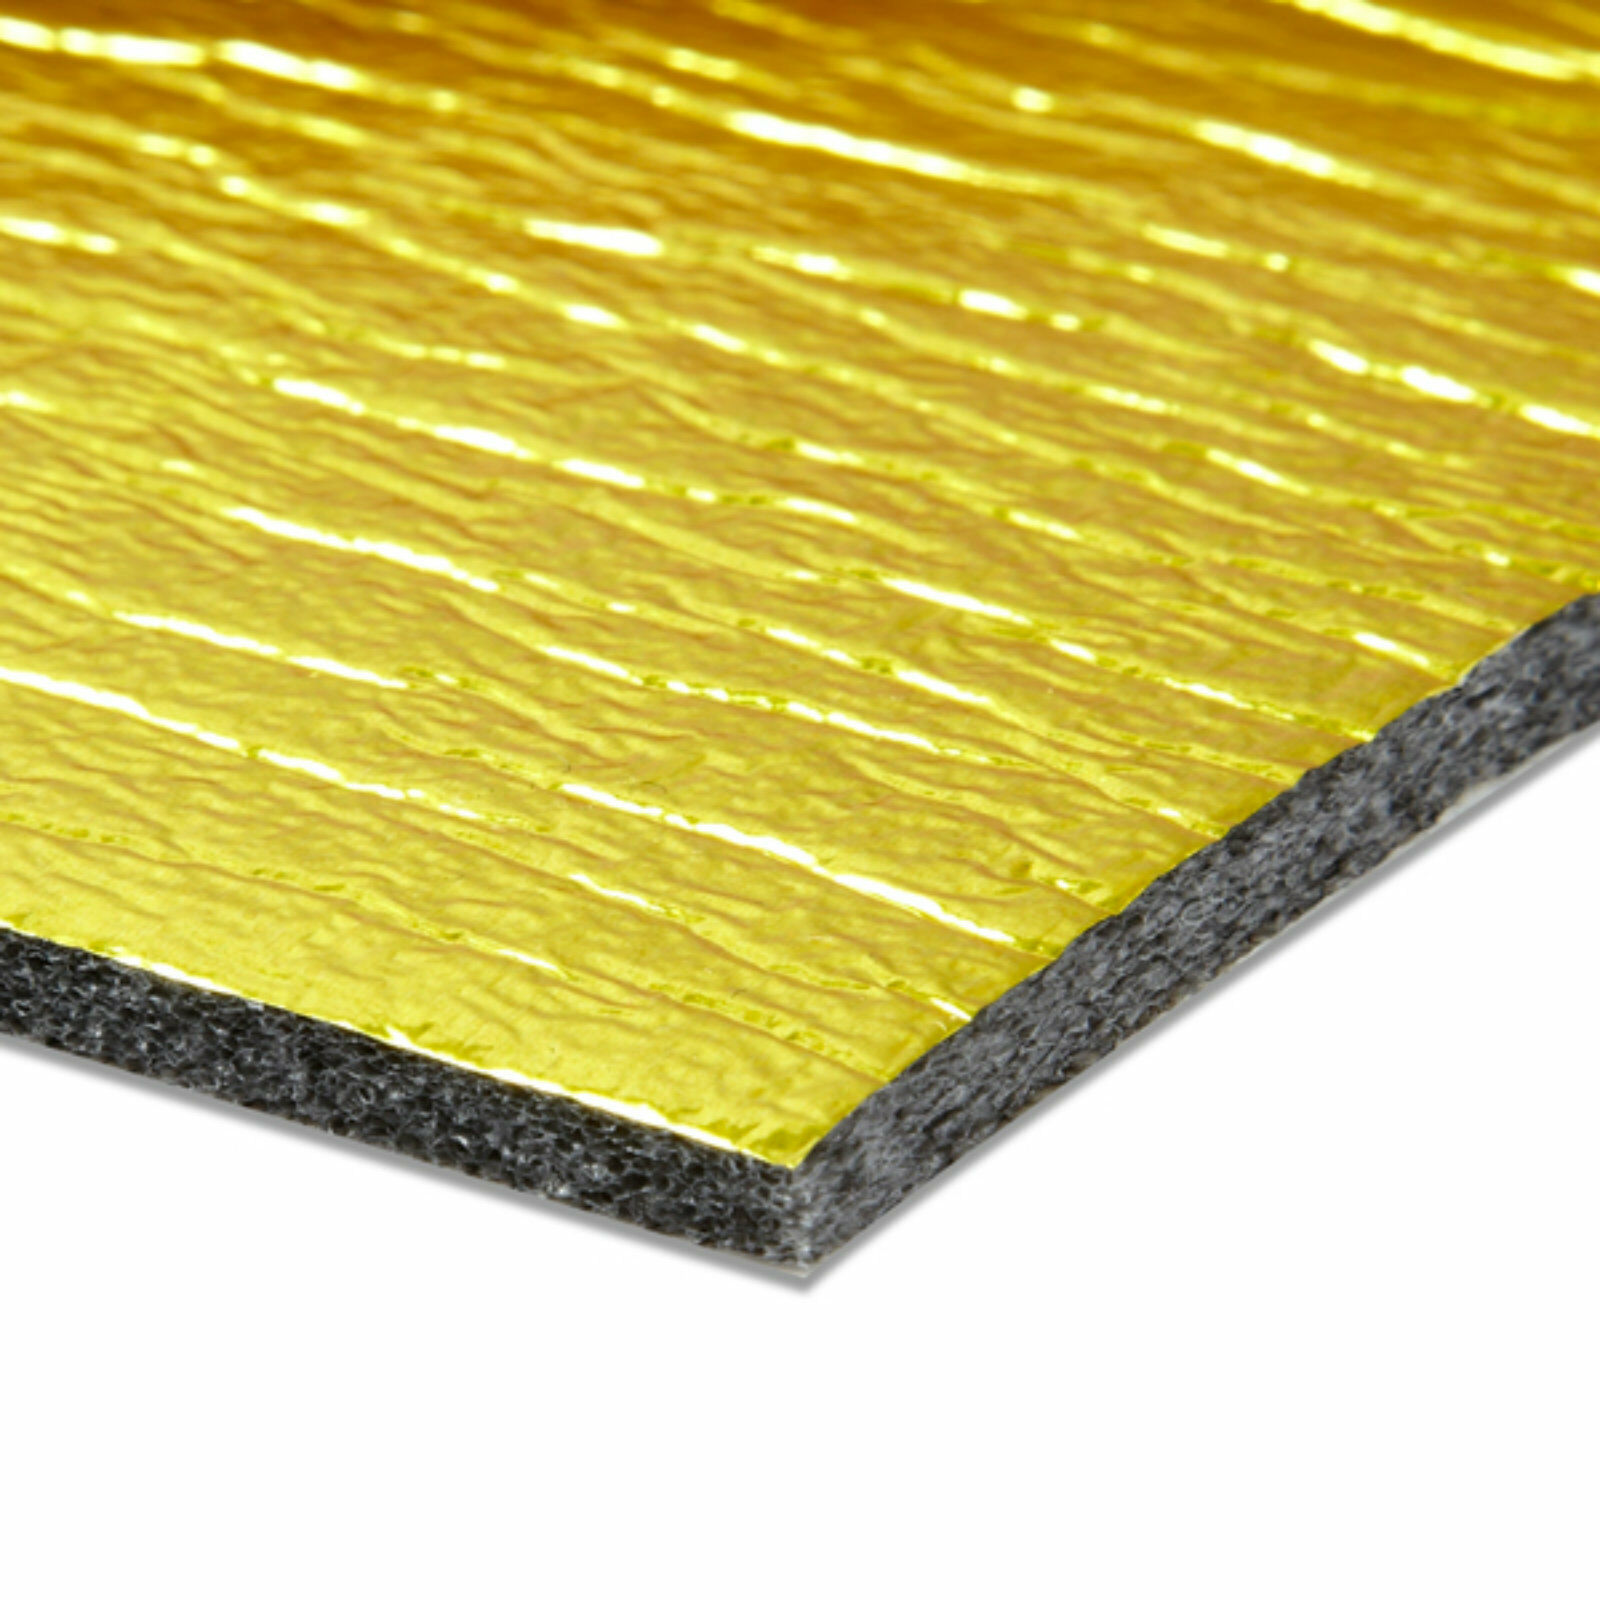 Comfort Gold 5mm Acoustic Underlay